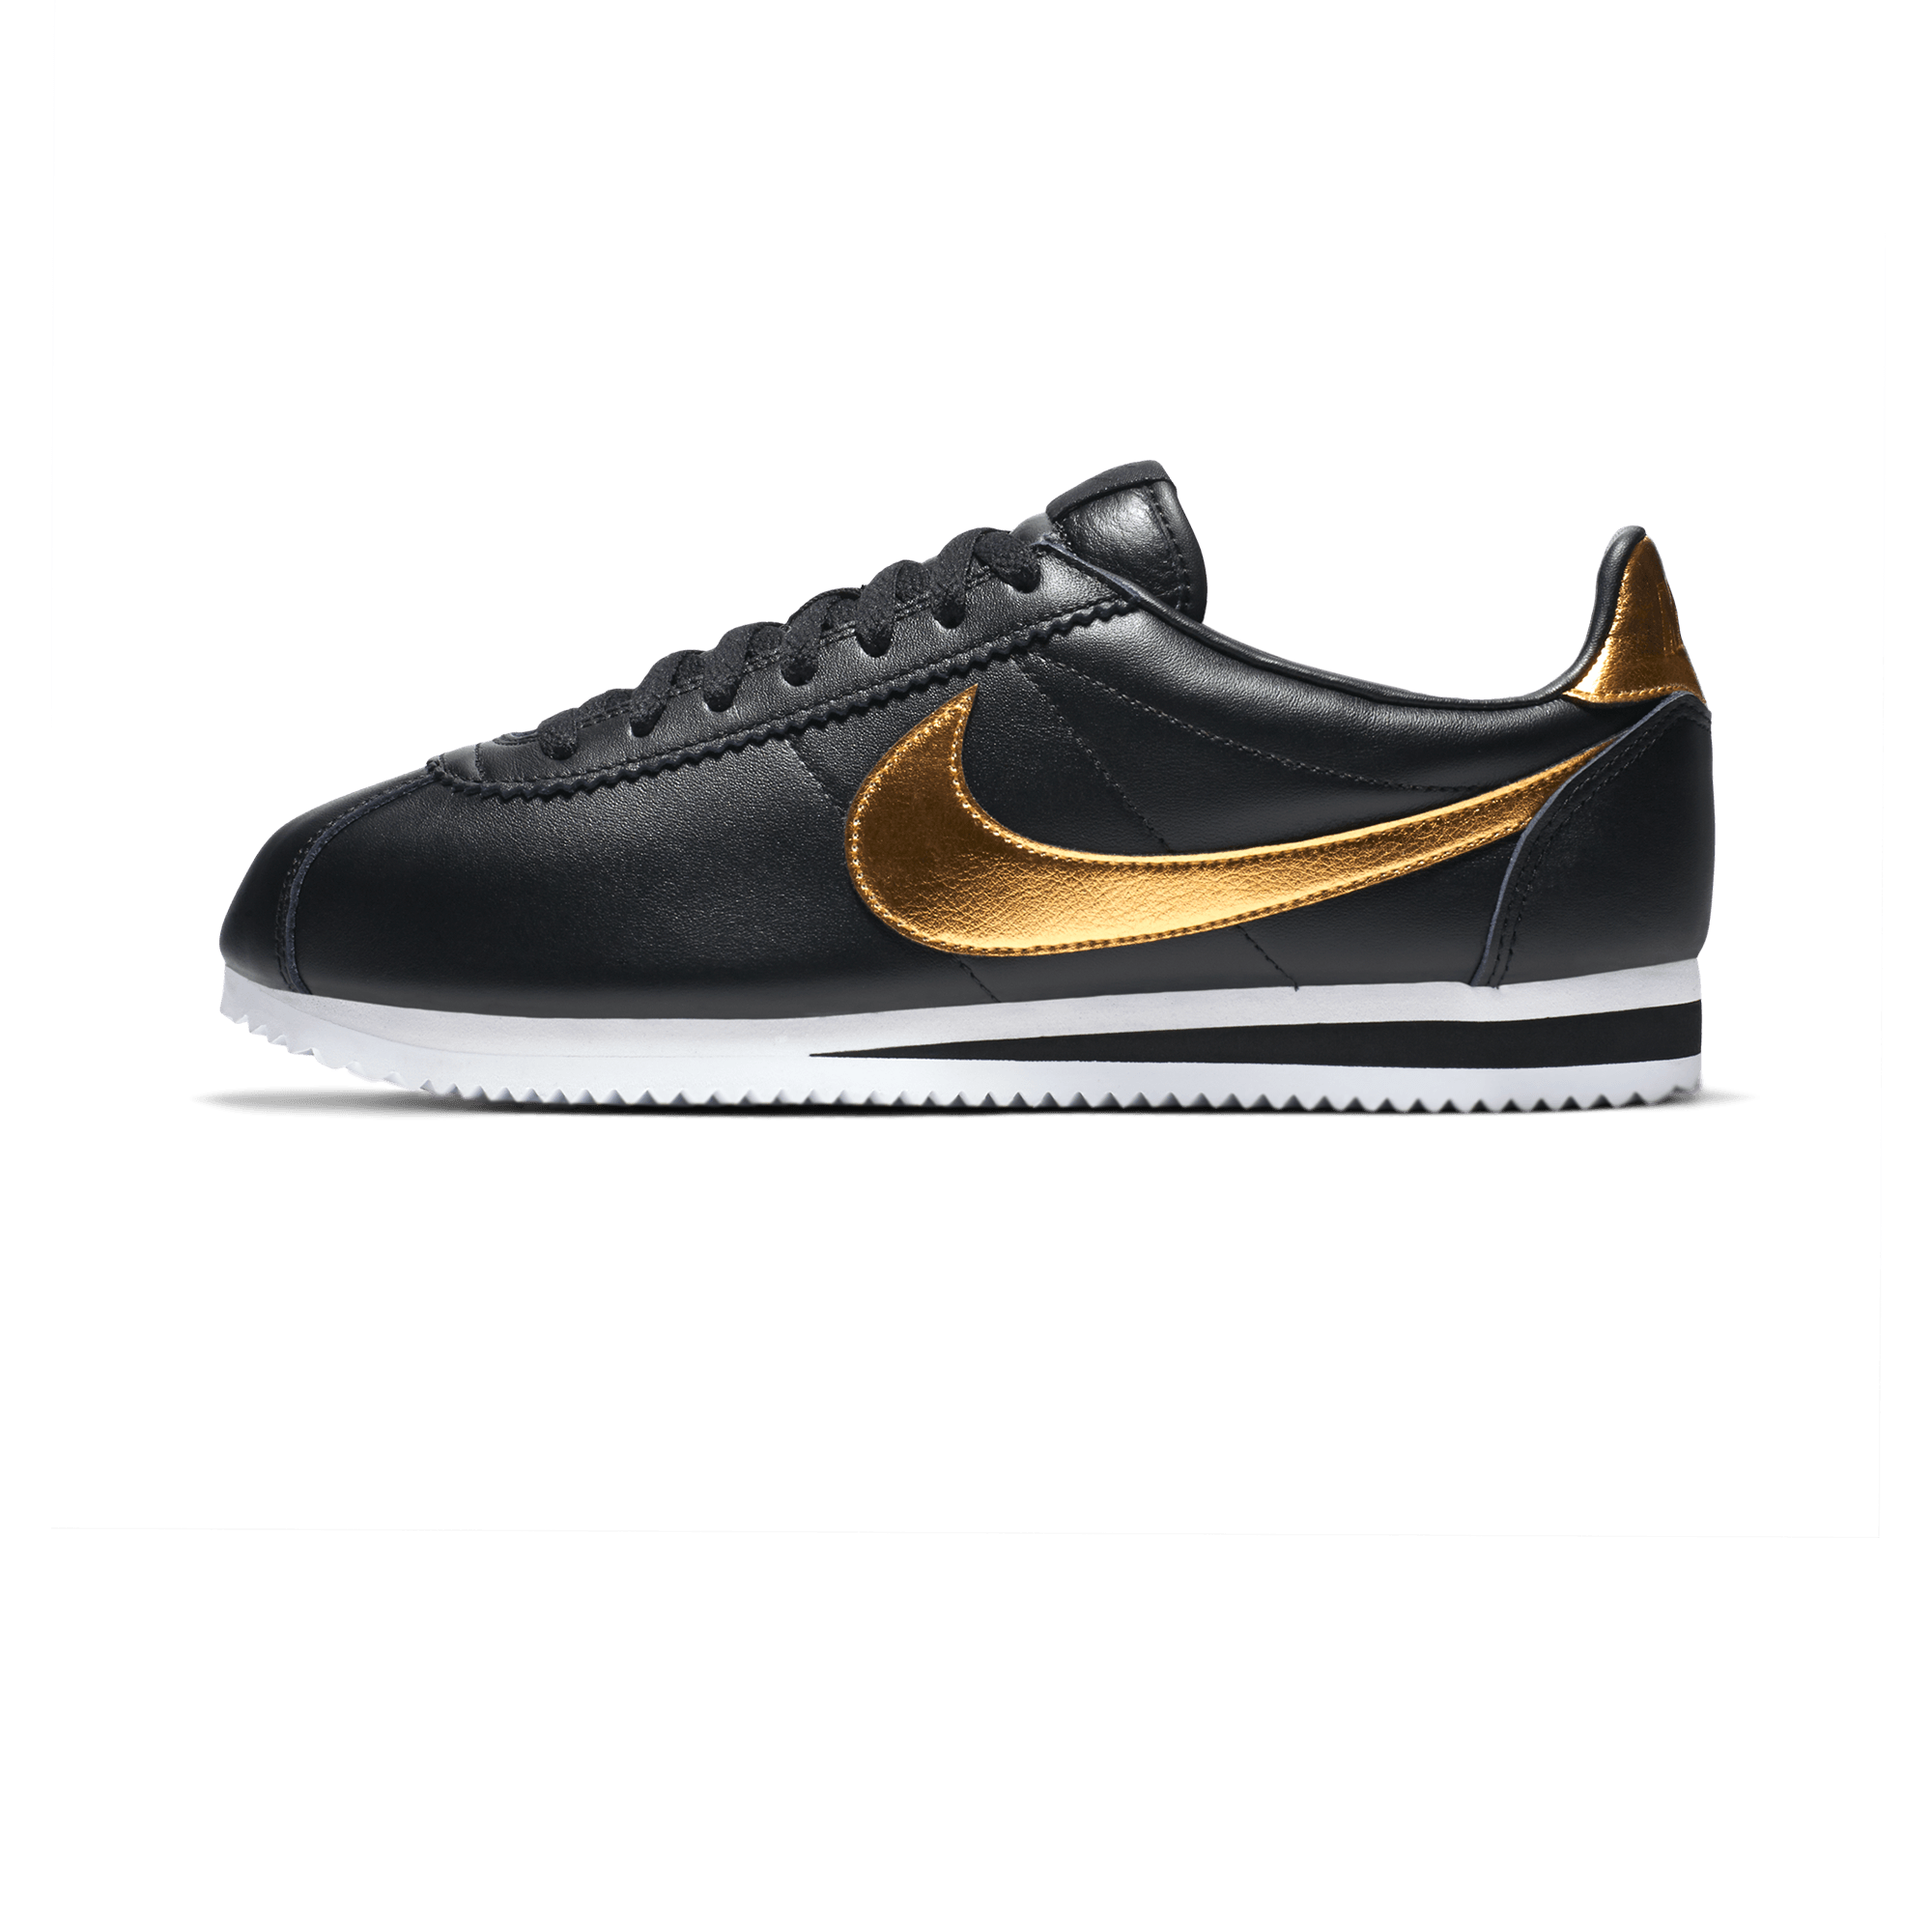 super popular 3ac30 c8d2f discount nike black gold cortez 46824 2f3cf